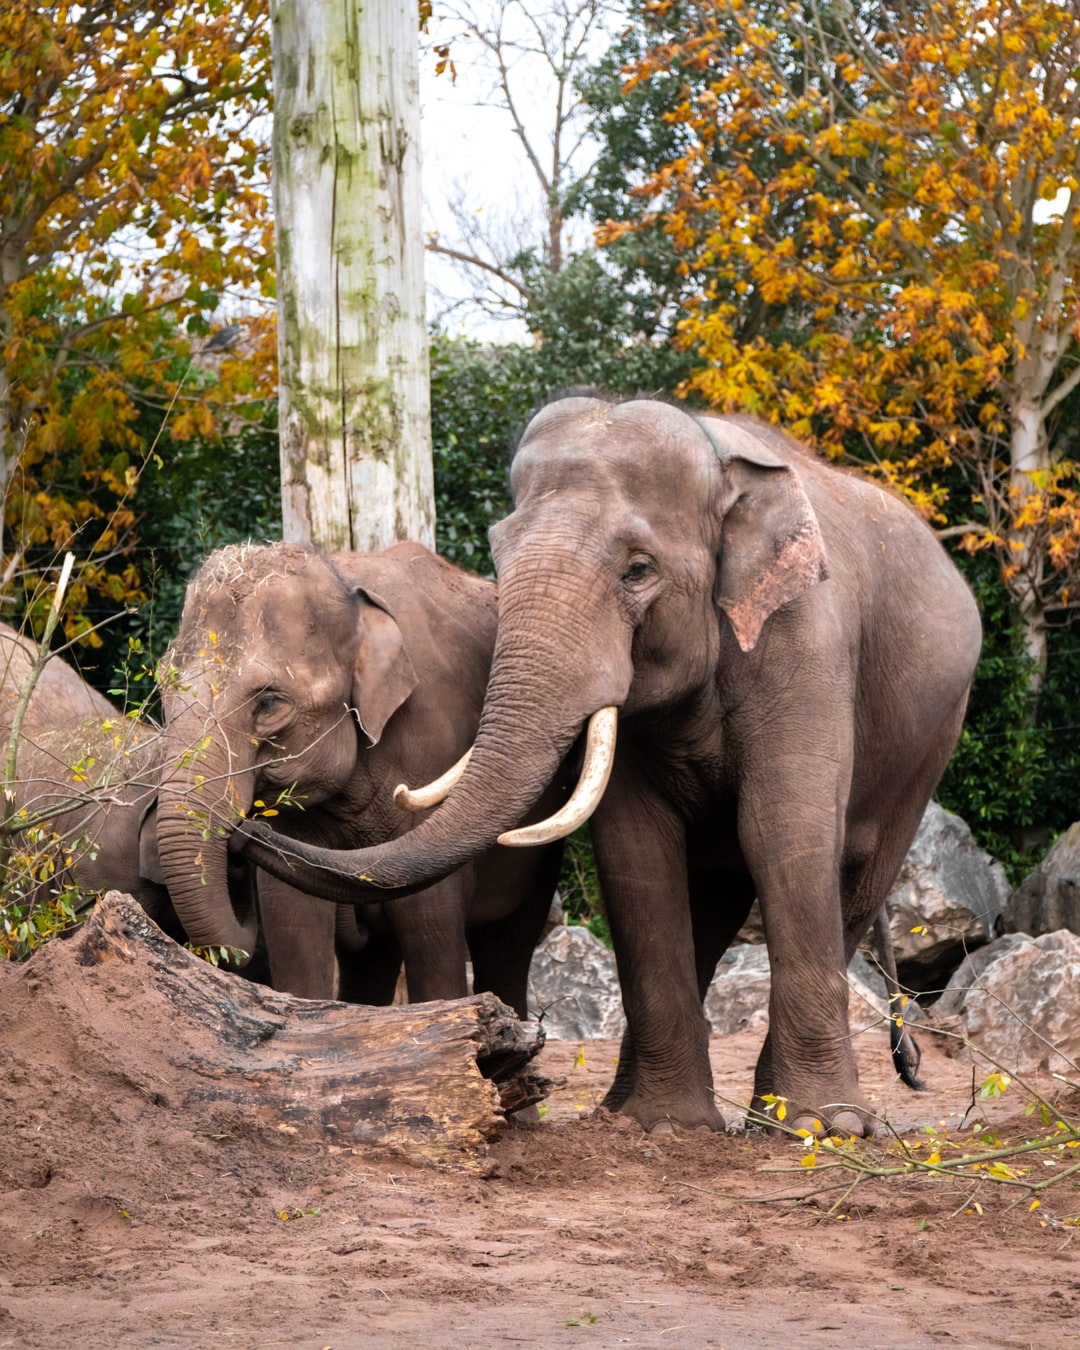 Family of elephants at Chester Zoo in Manchester